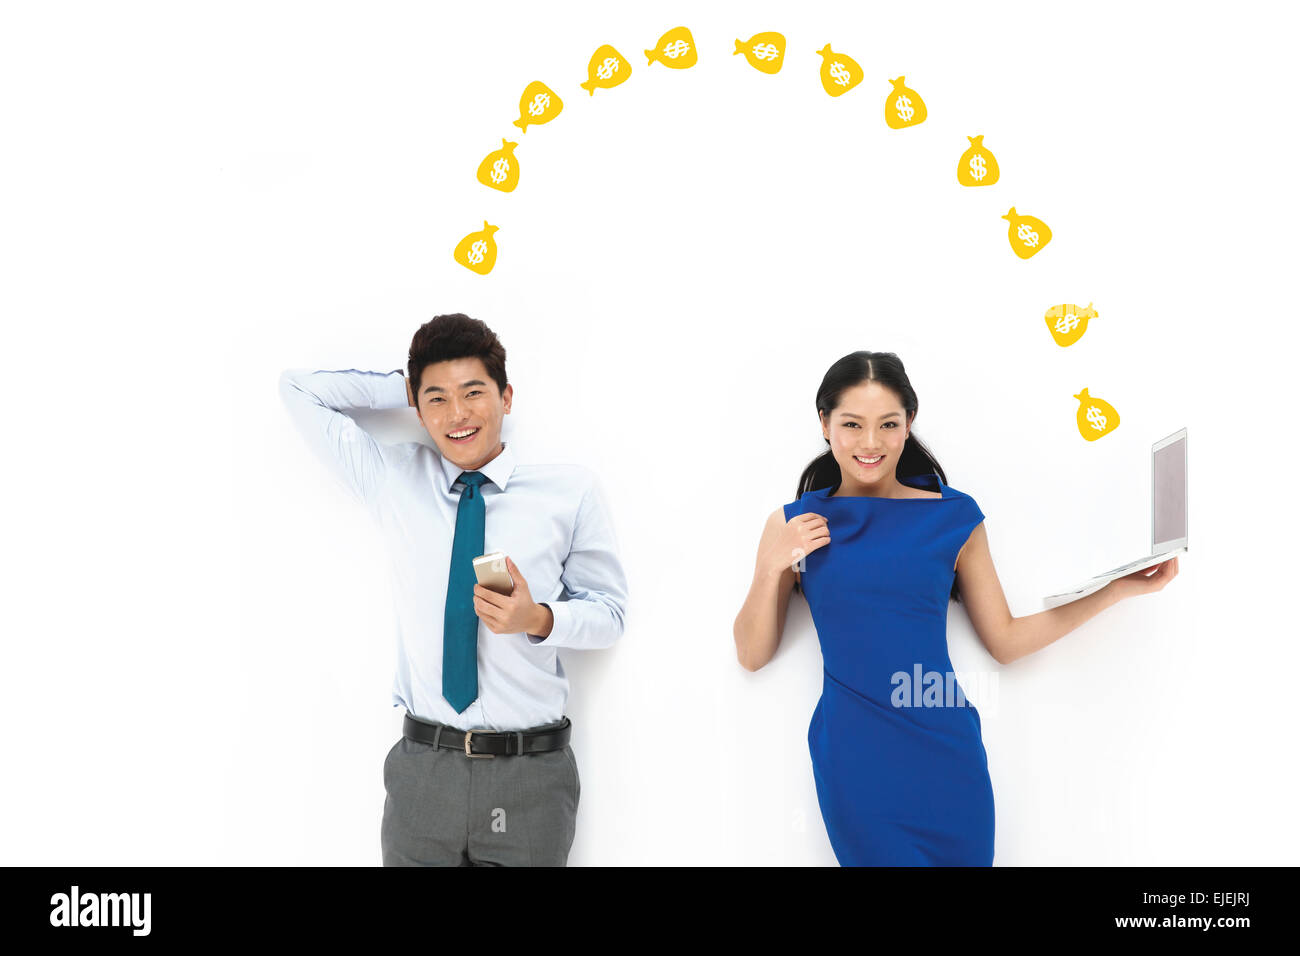 Business men and women with a mobile phone and handheld computer - Stock Image